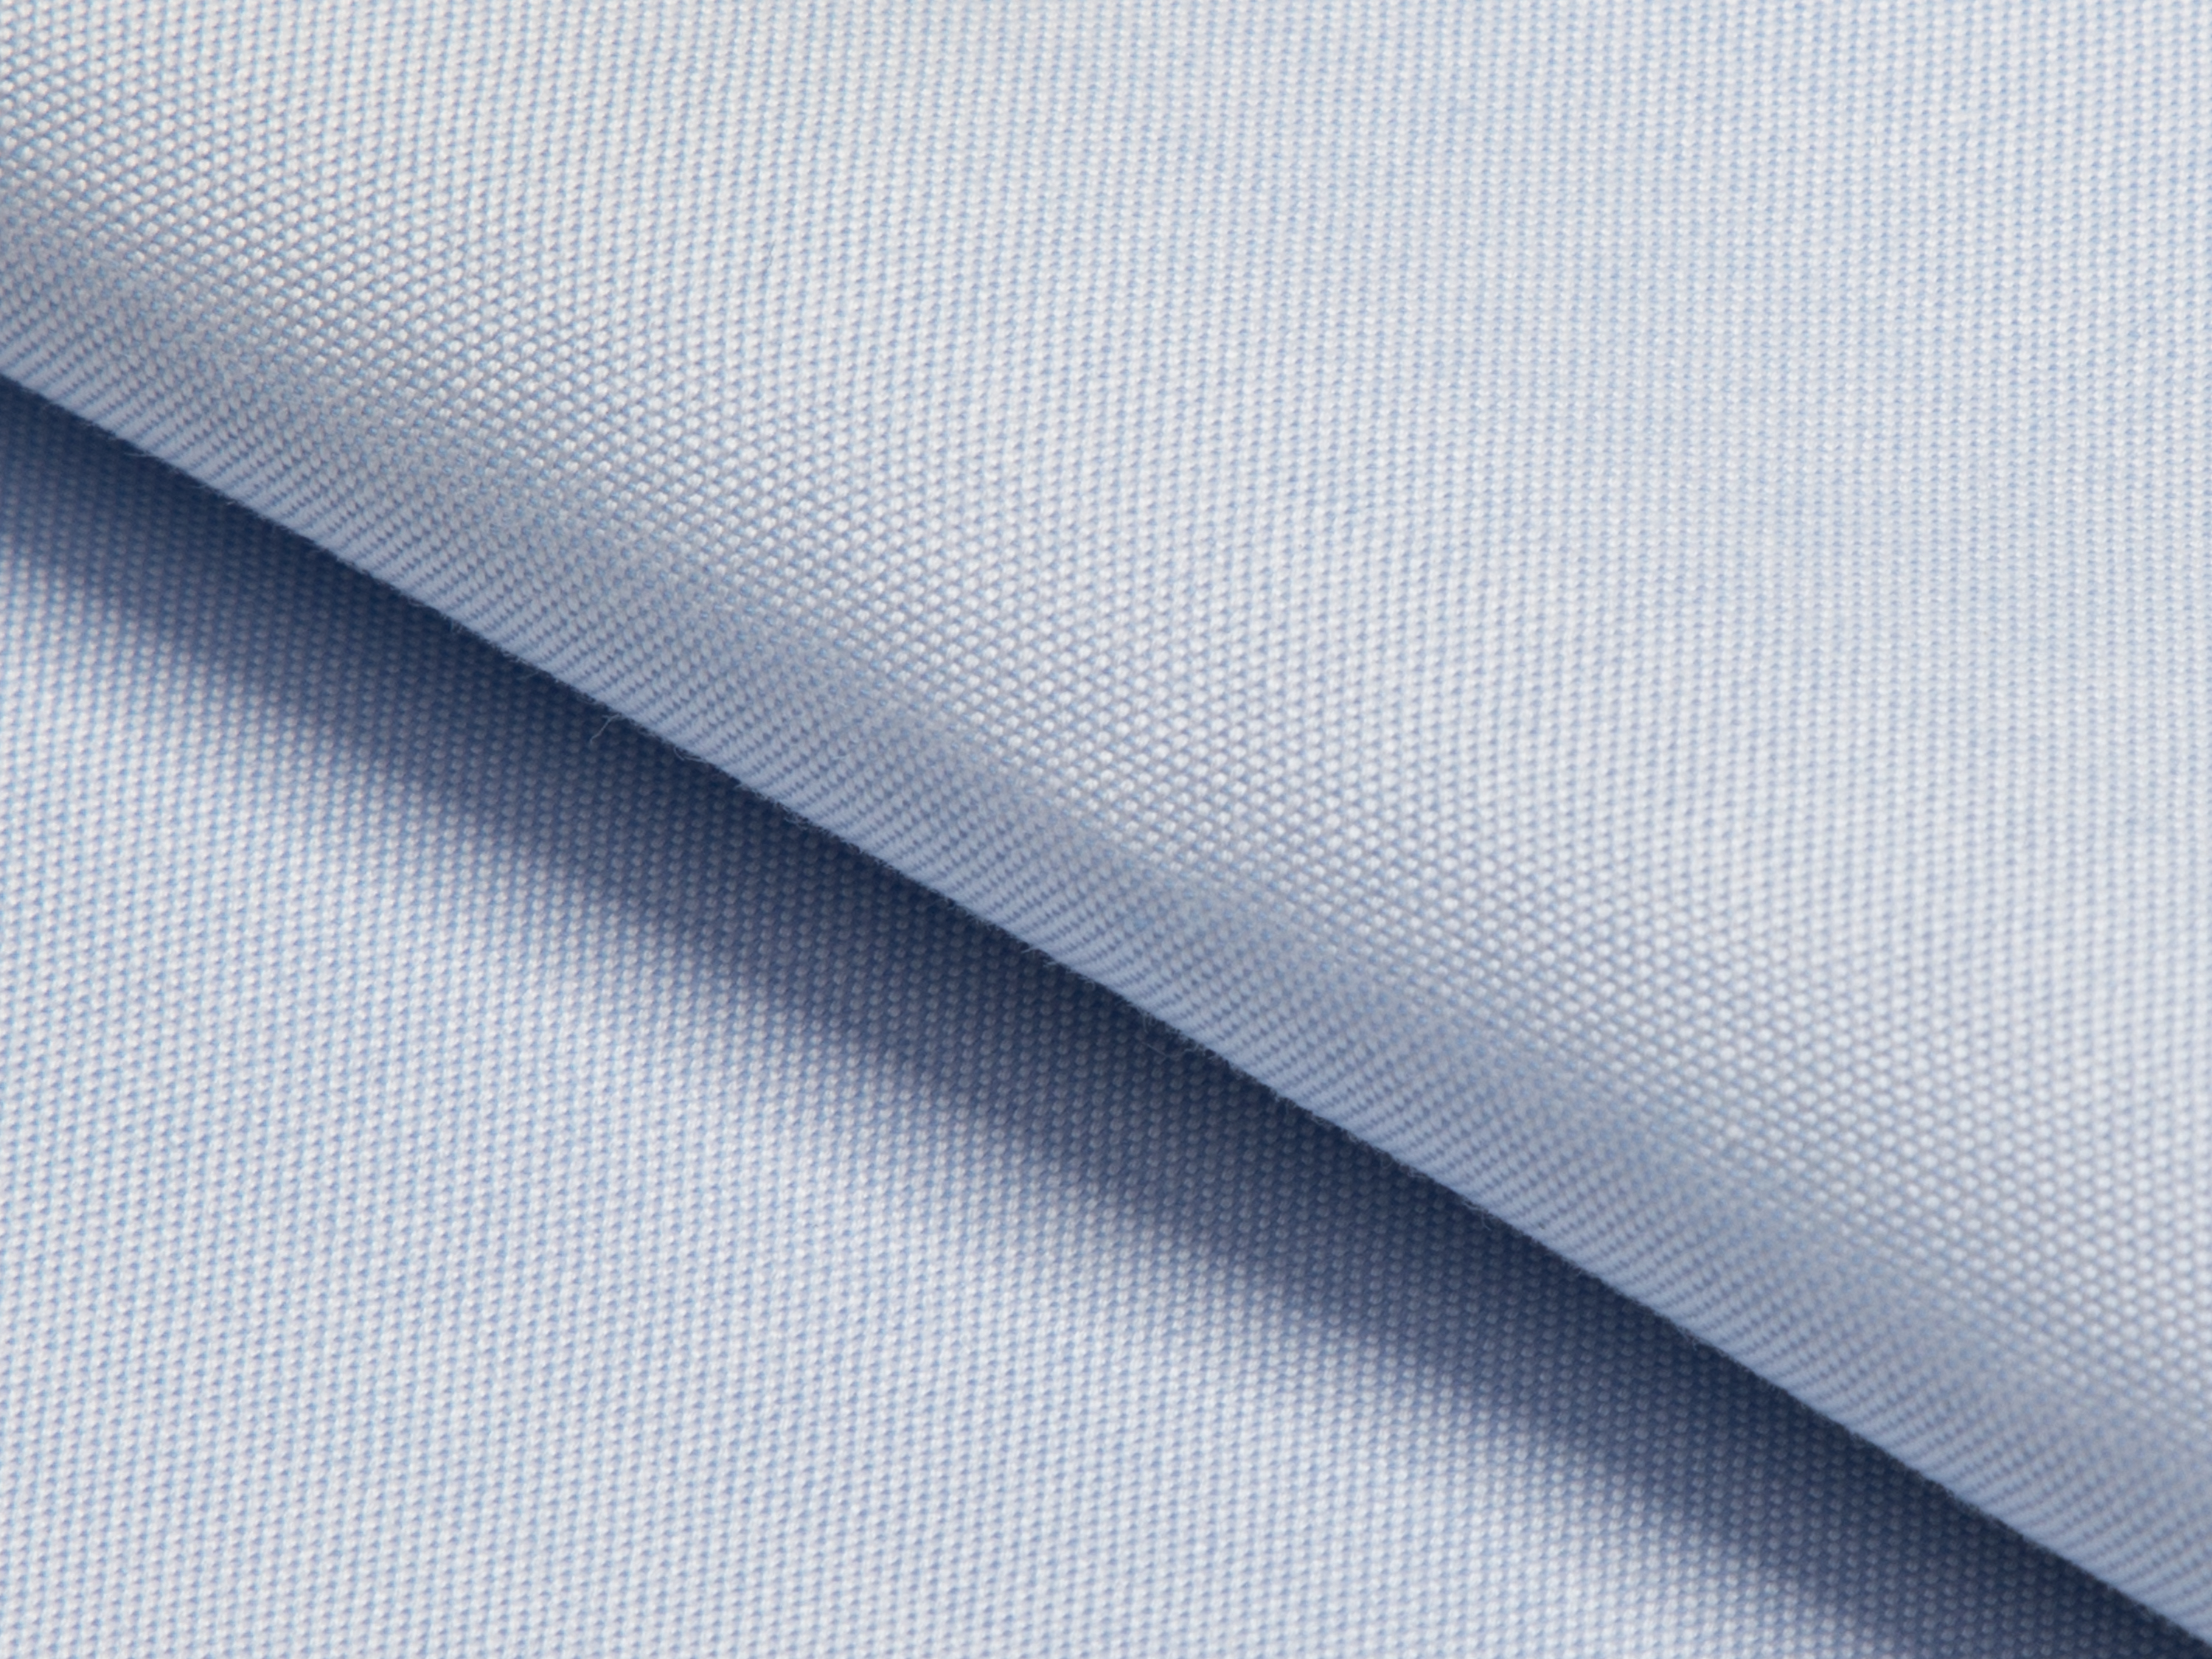 Buy tailor made shirts online - PINPOINT LUXURY - Pinpoint Light Blue